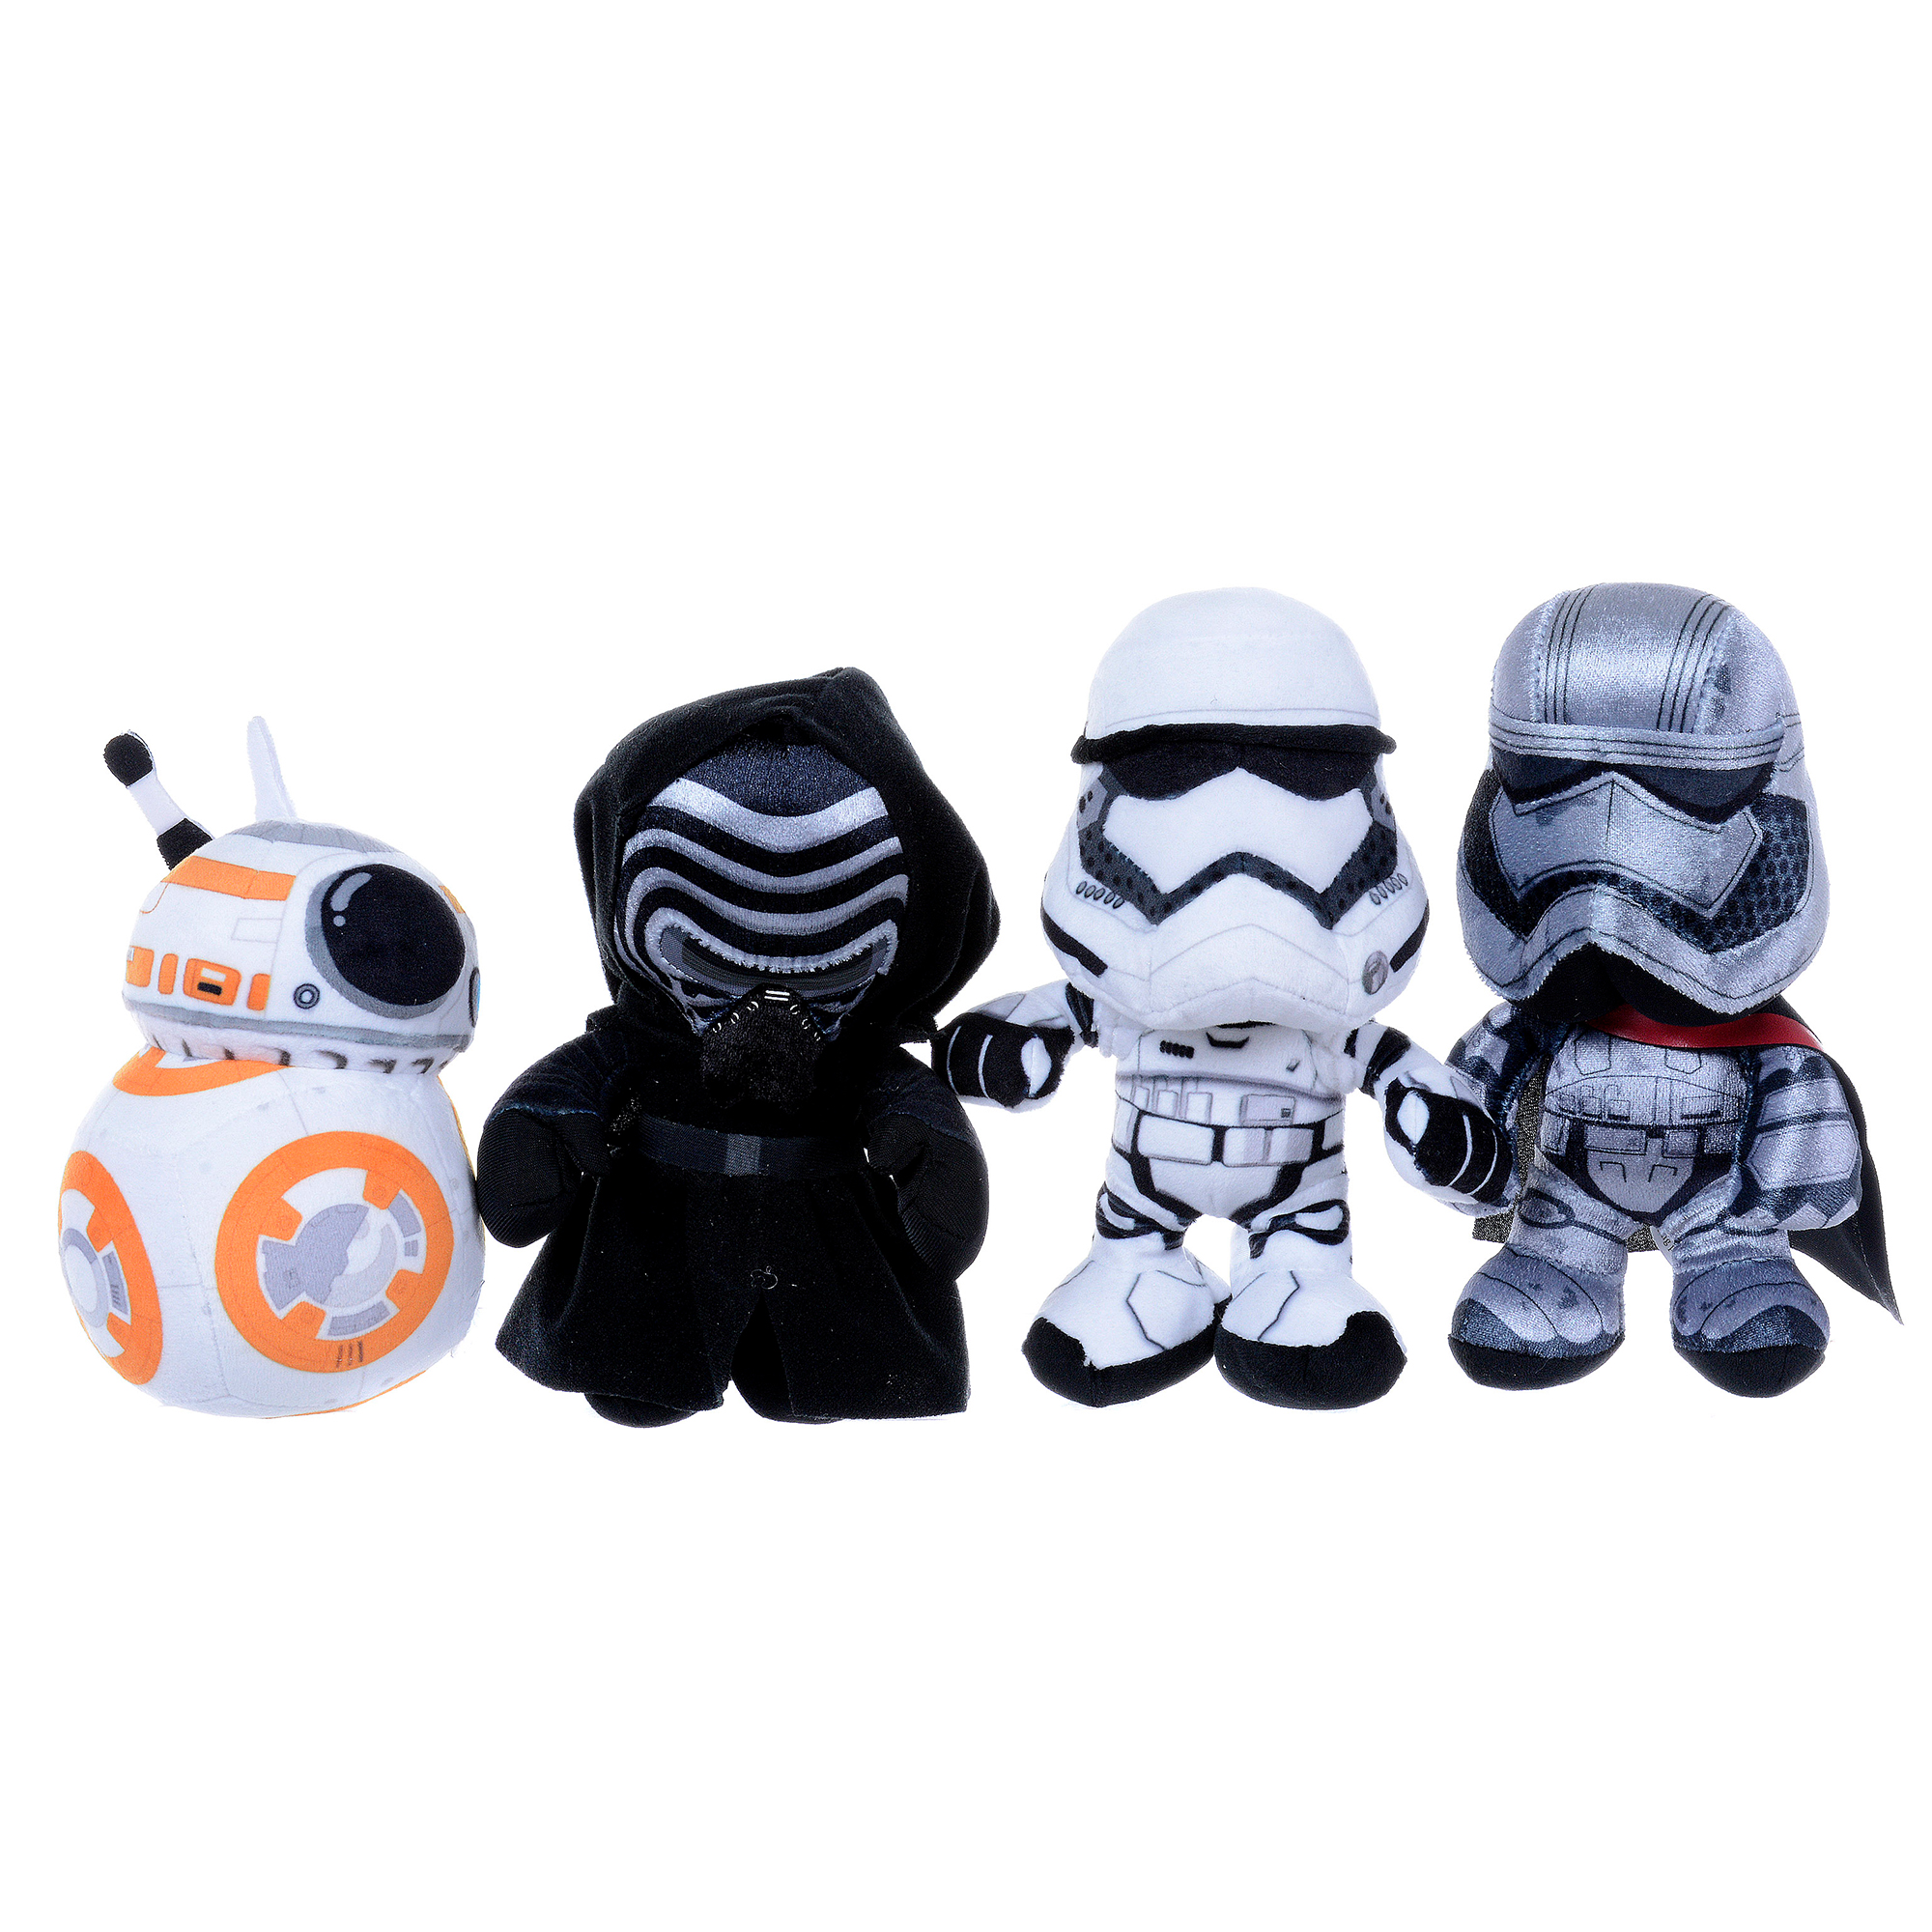 Picture of Star Wars The Force Awakens Small Soft Toy Assortment